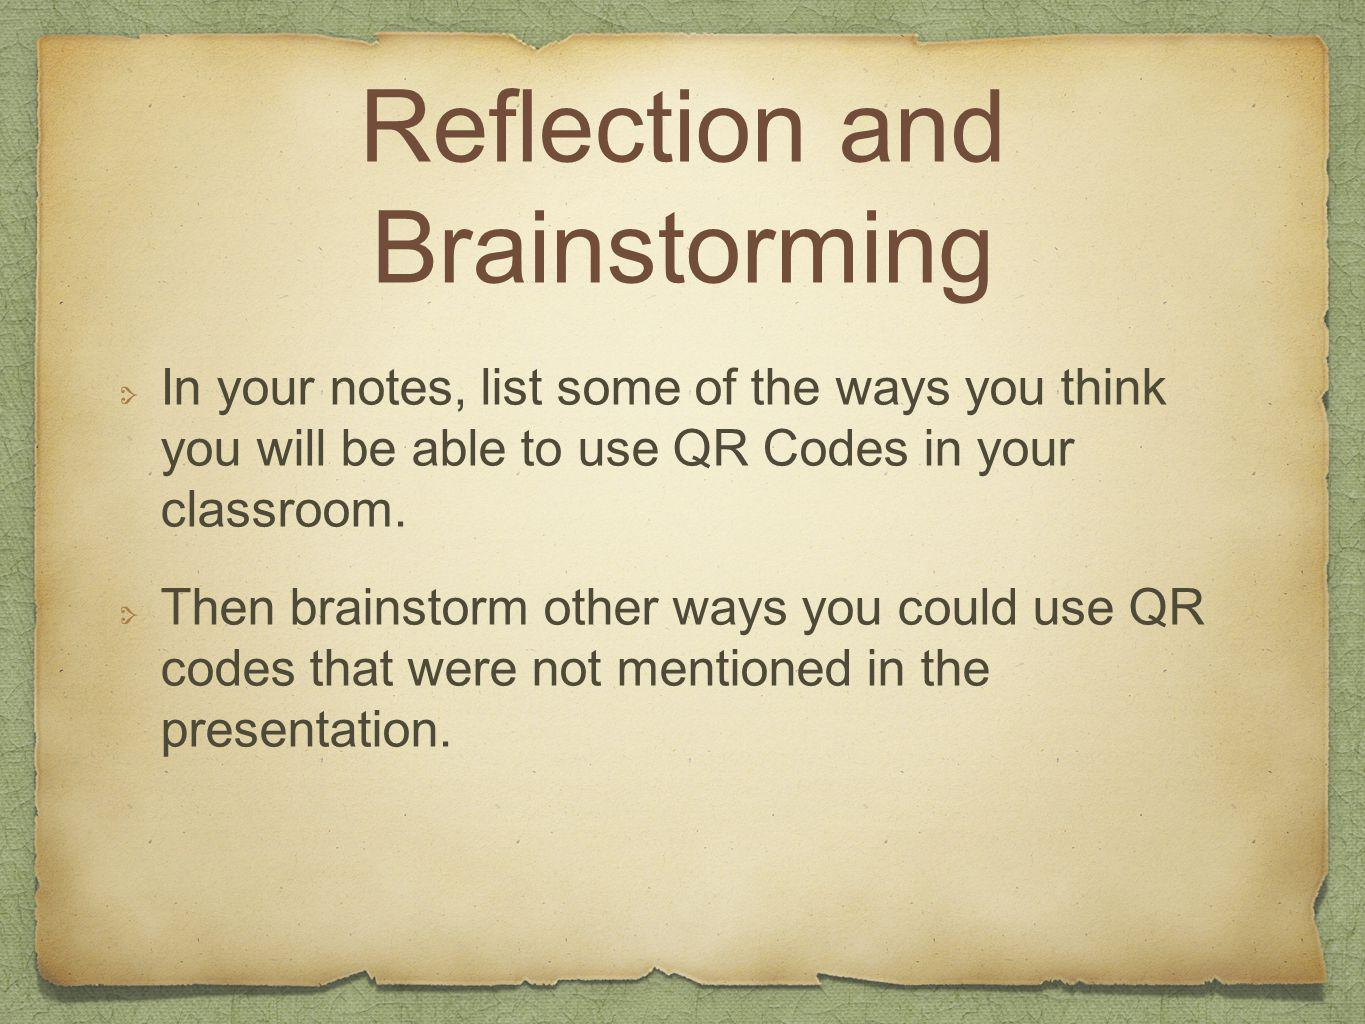 Reflection and Brainstorming In your notes, list some of the ways you think you will be able to use QR Codes in your classroom. Then brainstorm other